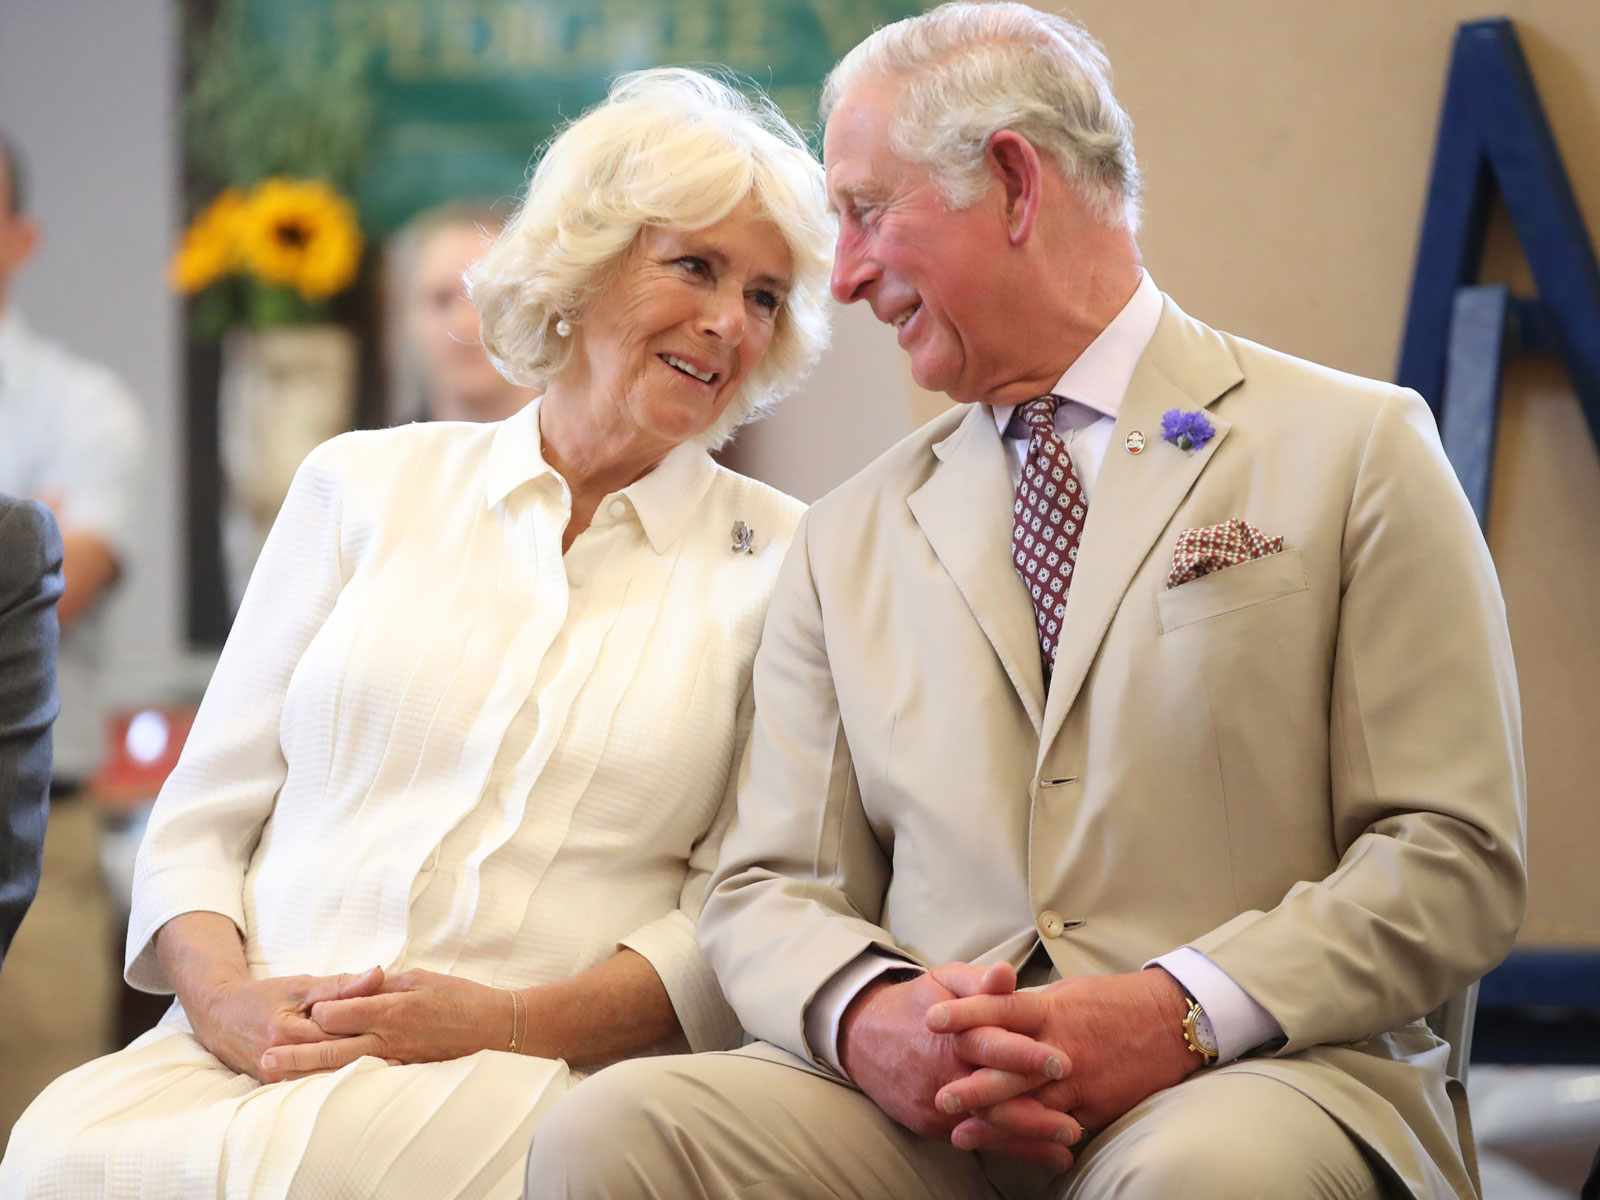 Prince Charles Opens a Bed-and-Breakfast at a Scottish Castle That Was Home to His Grandmother